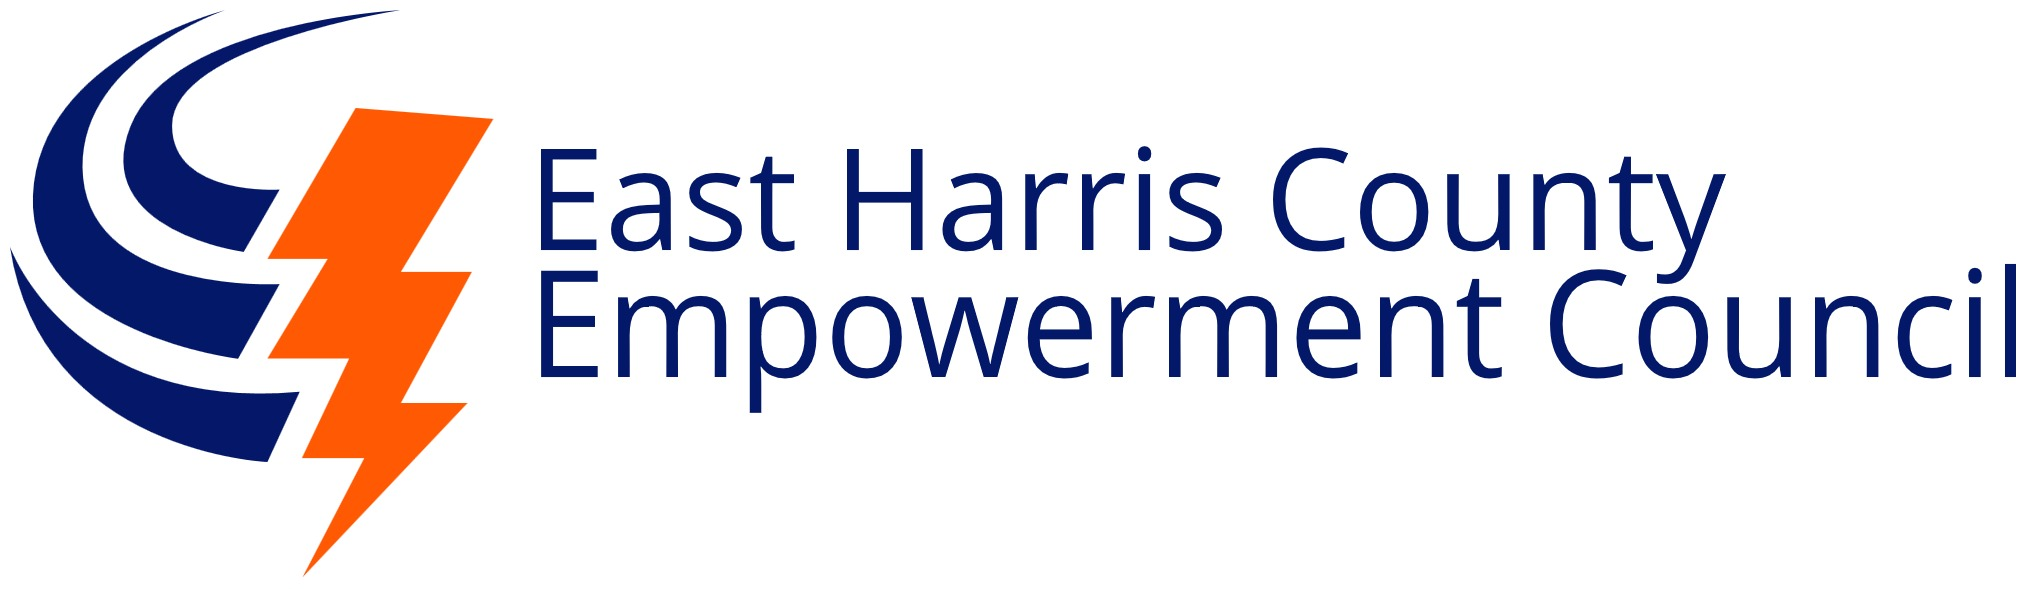 East Harris County Empowerment Council